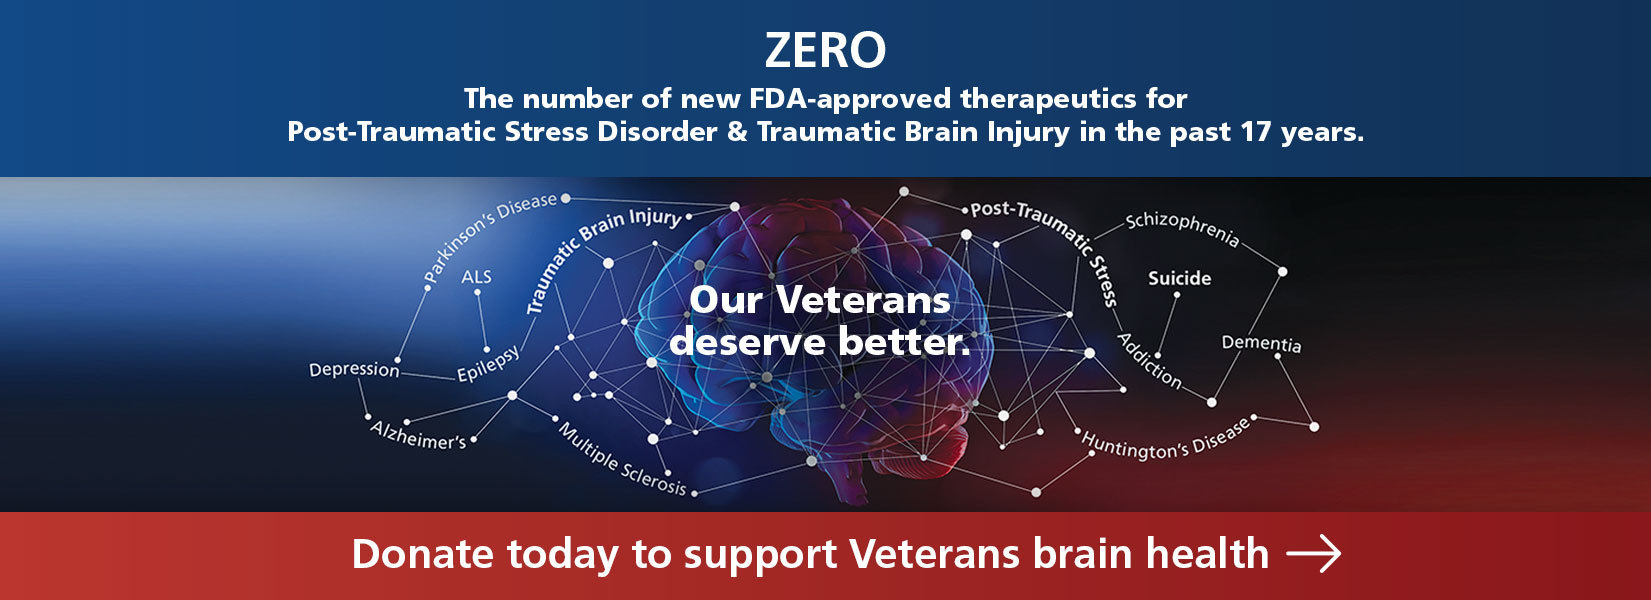 Donate today to support Veterans brain health